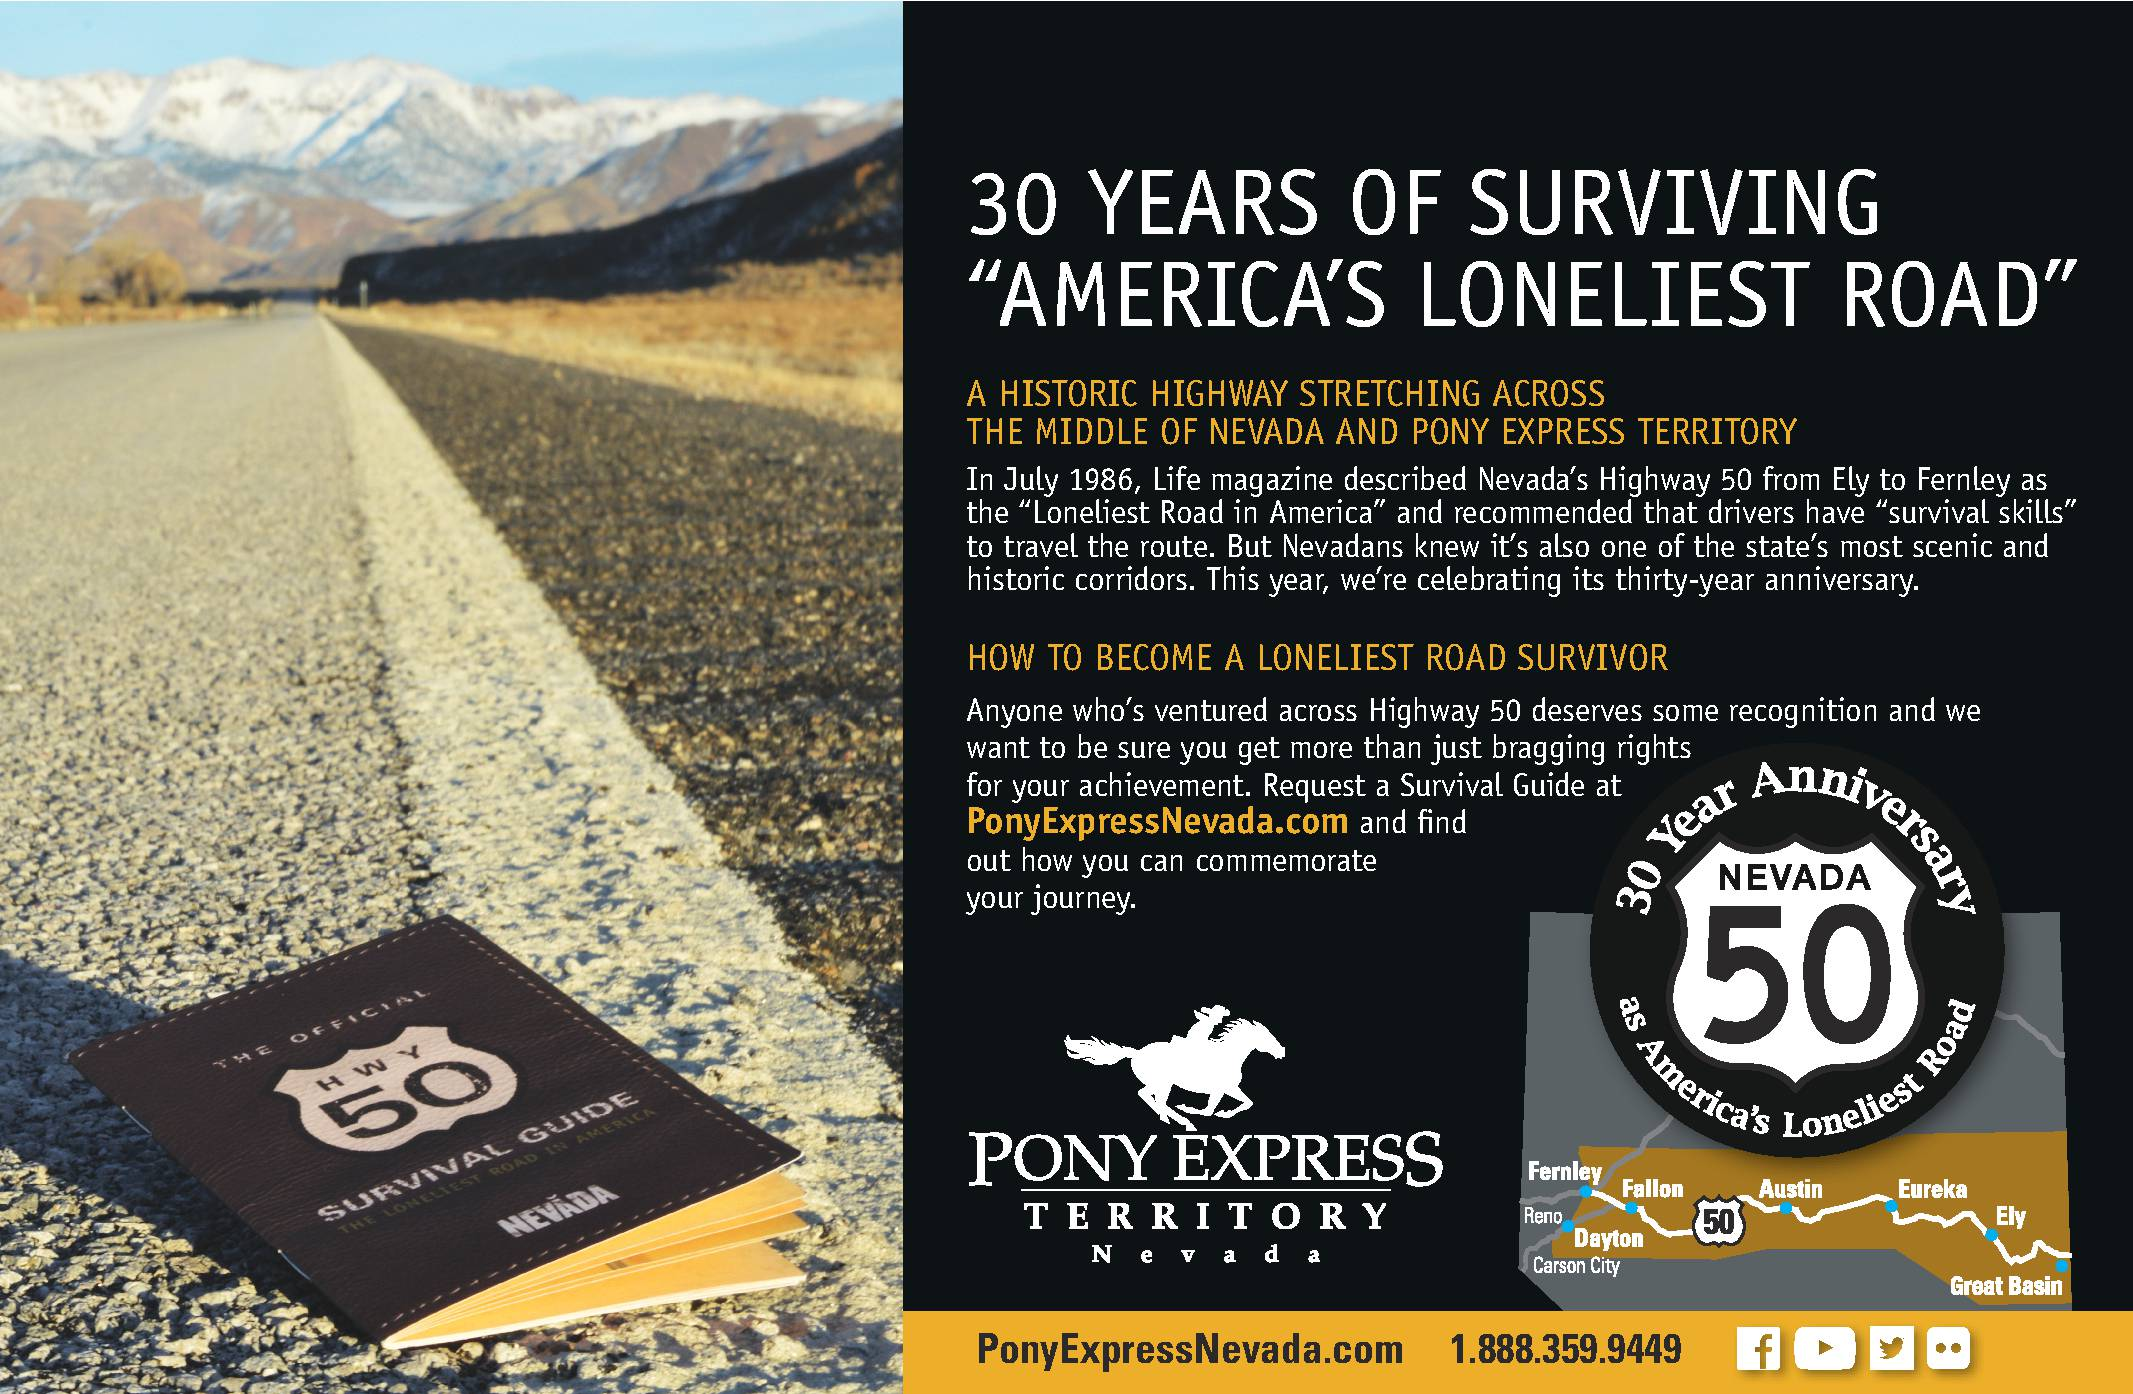 Pony Express Territory Guide